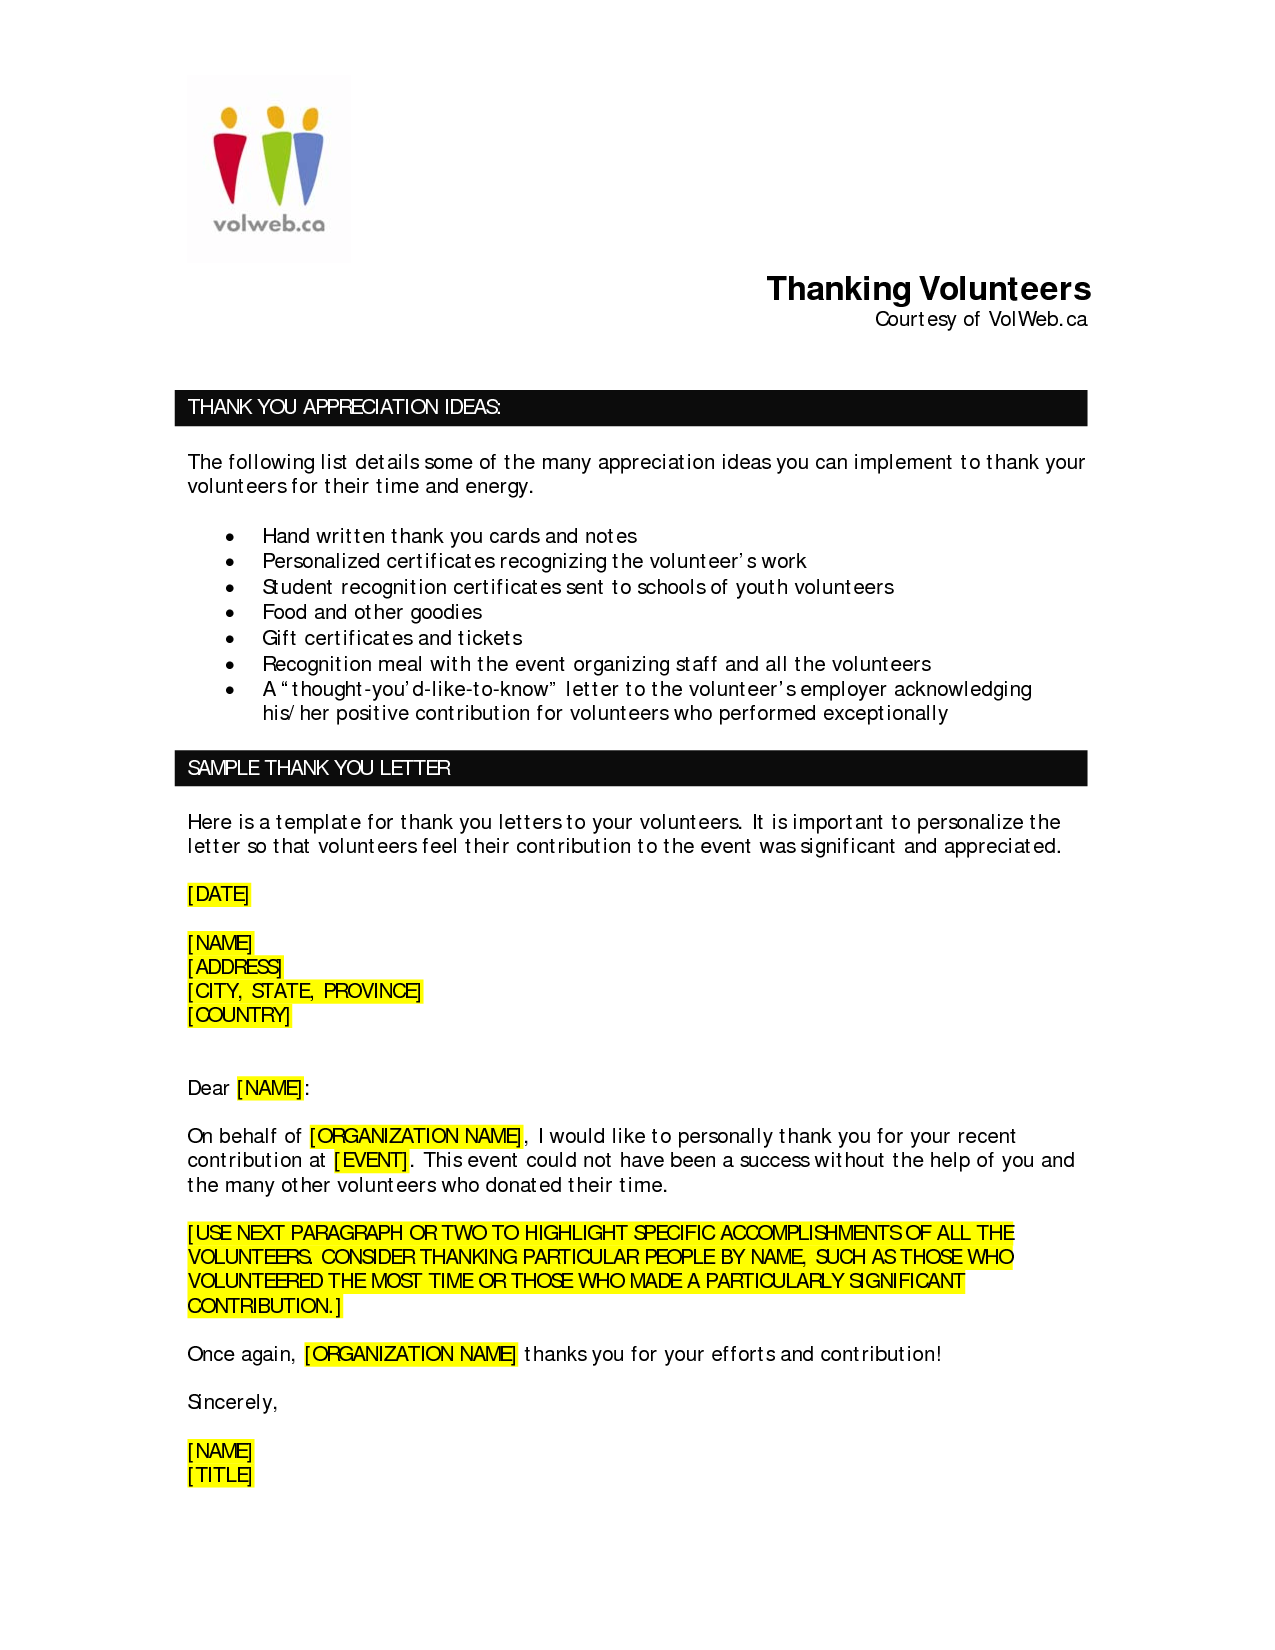 Volunteer Appreciation Letter Sample  FotolipCom Rich Image And